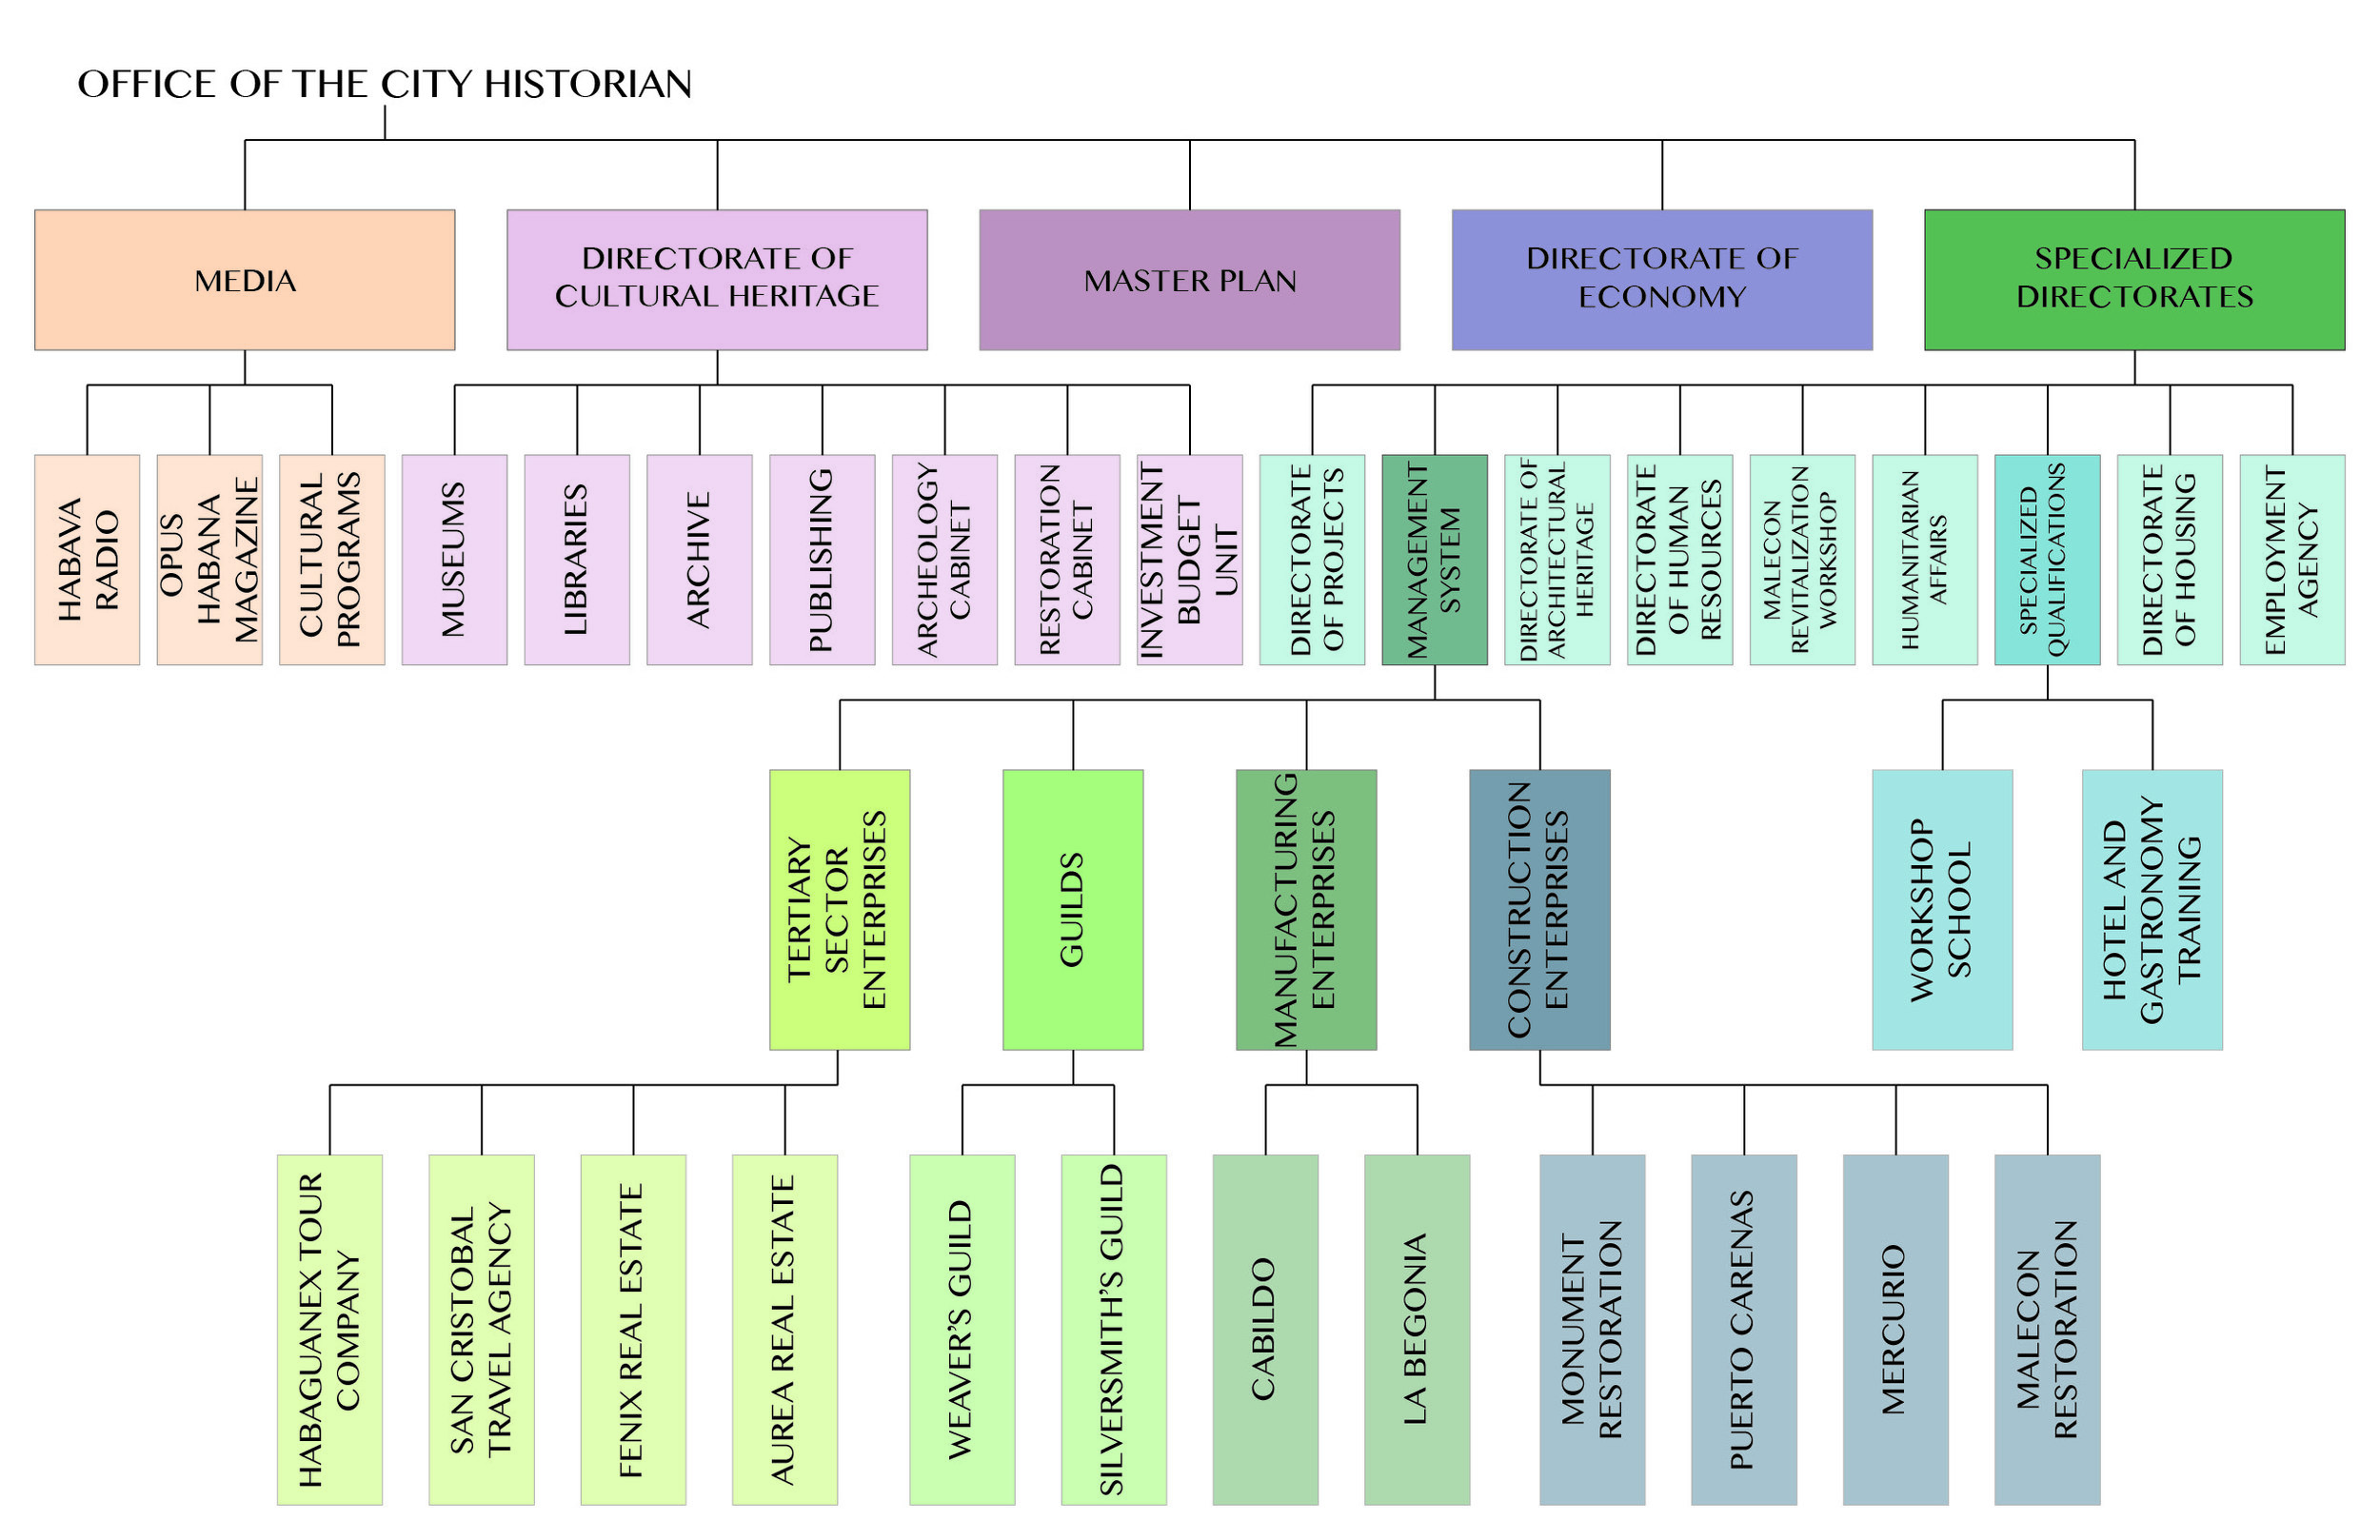 Organizational Chart of the Office of the City Historian